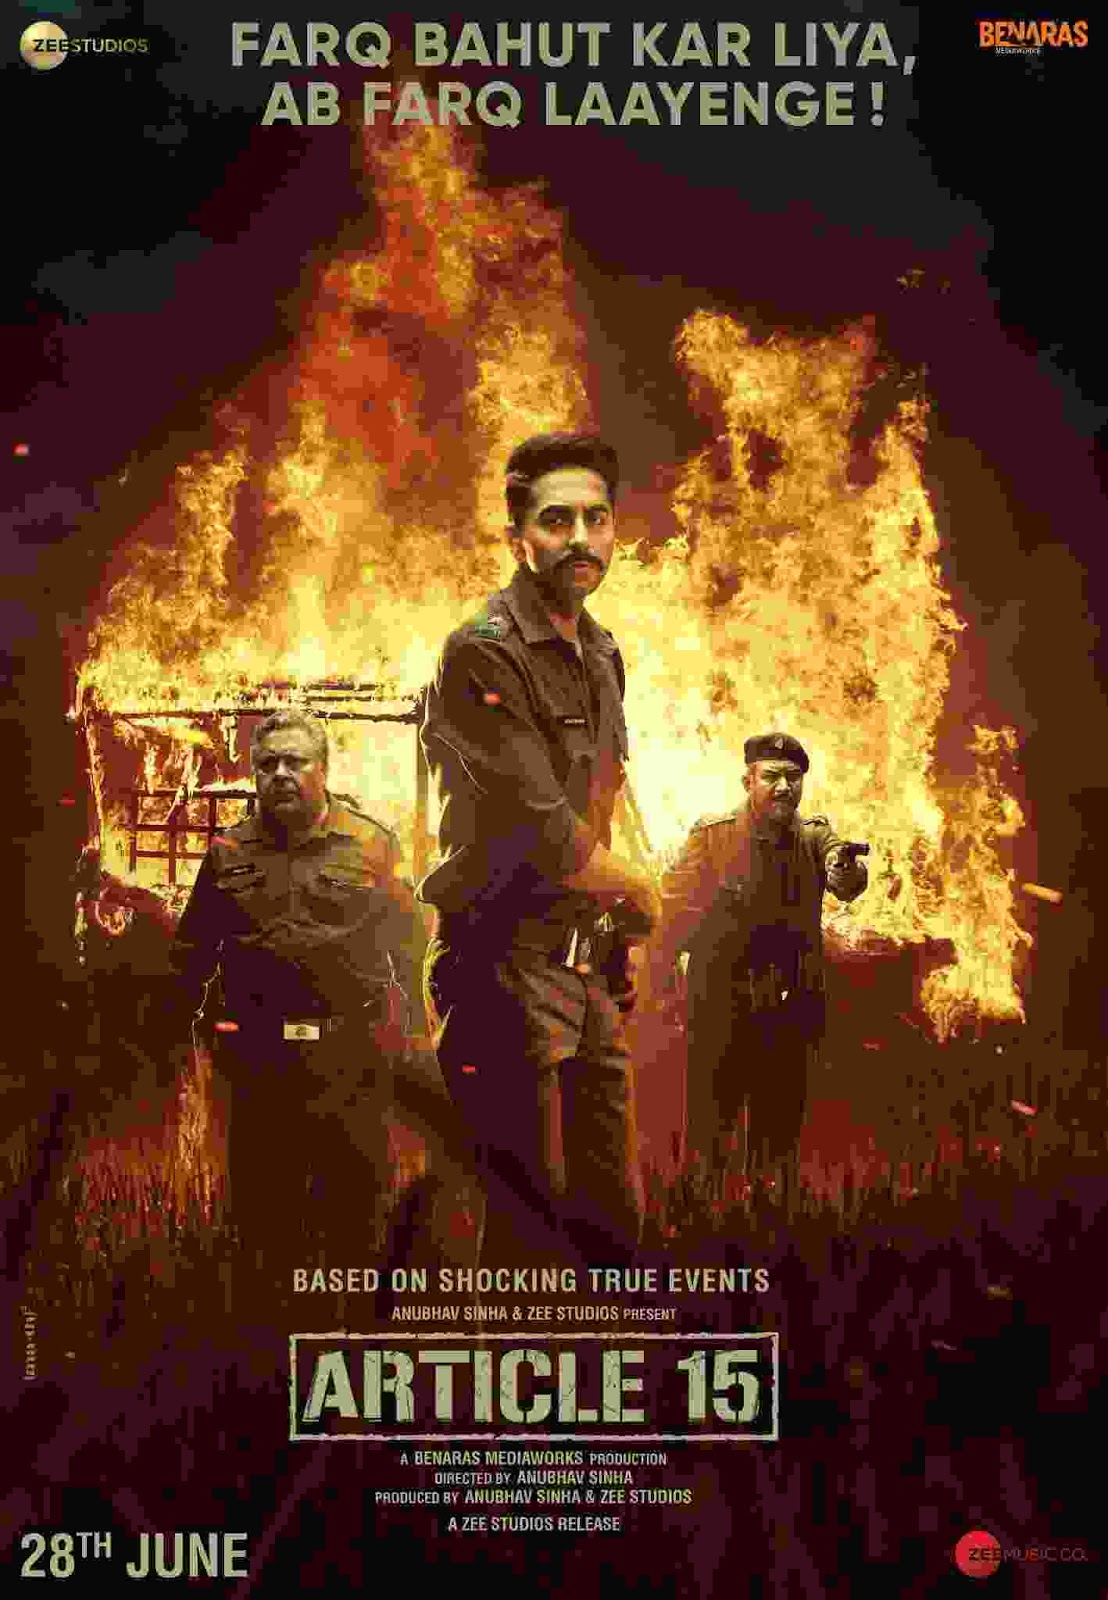 Article 15 (2019) Full HD movie Download For Free Leaked by